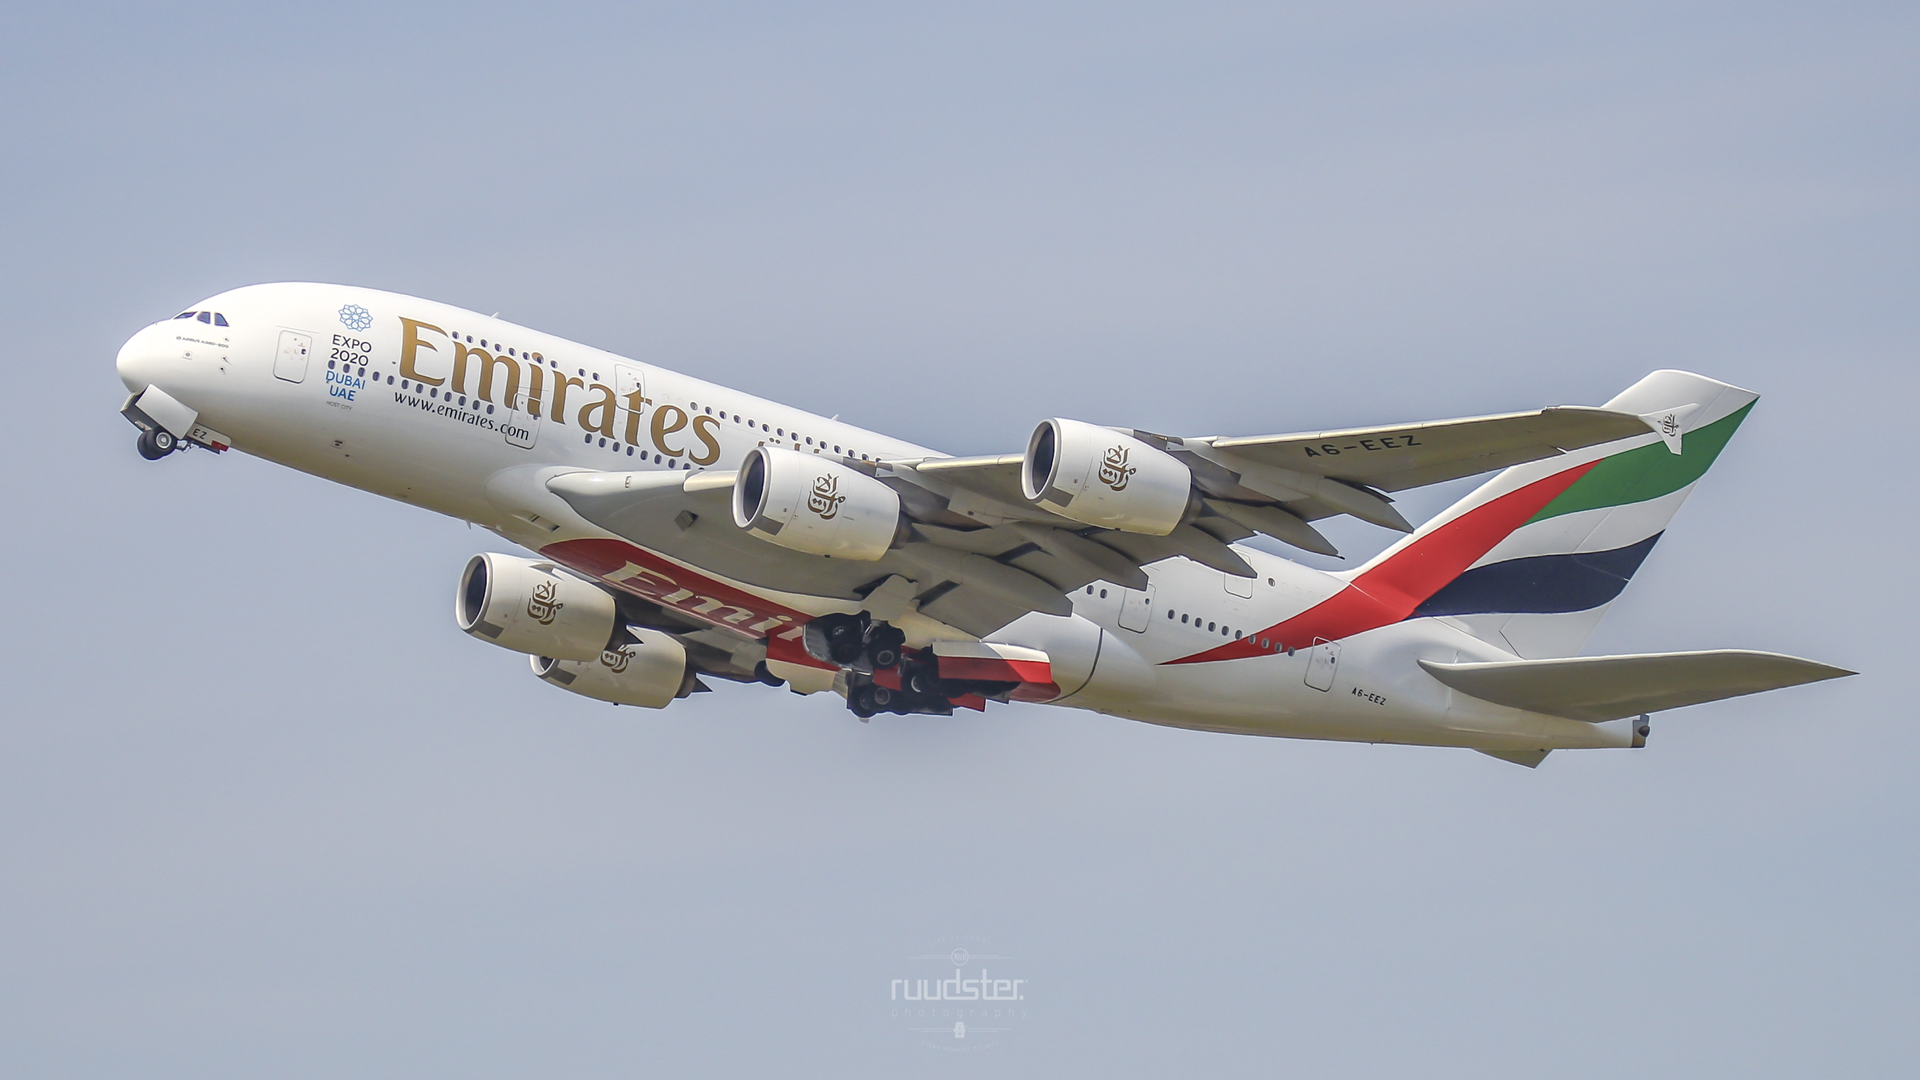 A6-EEZ | Build: 2014 - Airbus A380-800